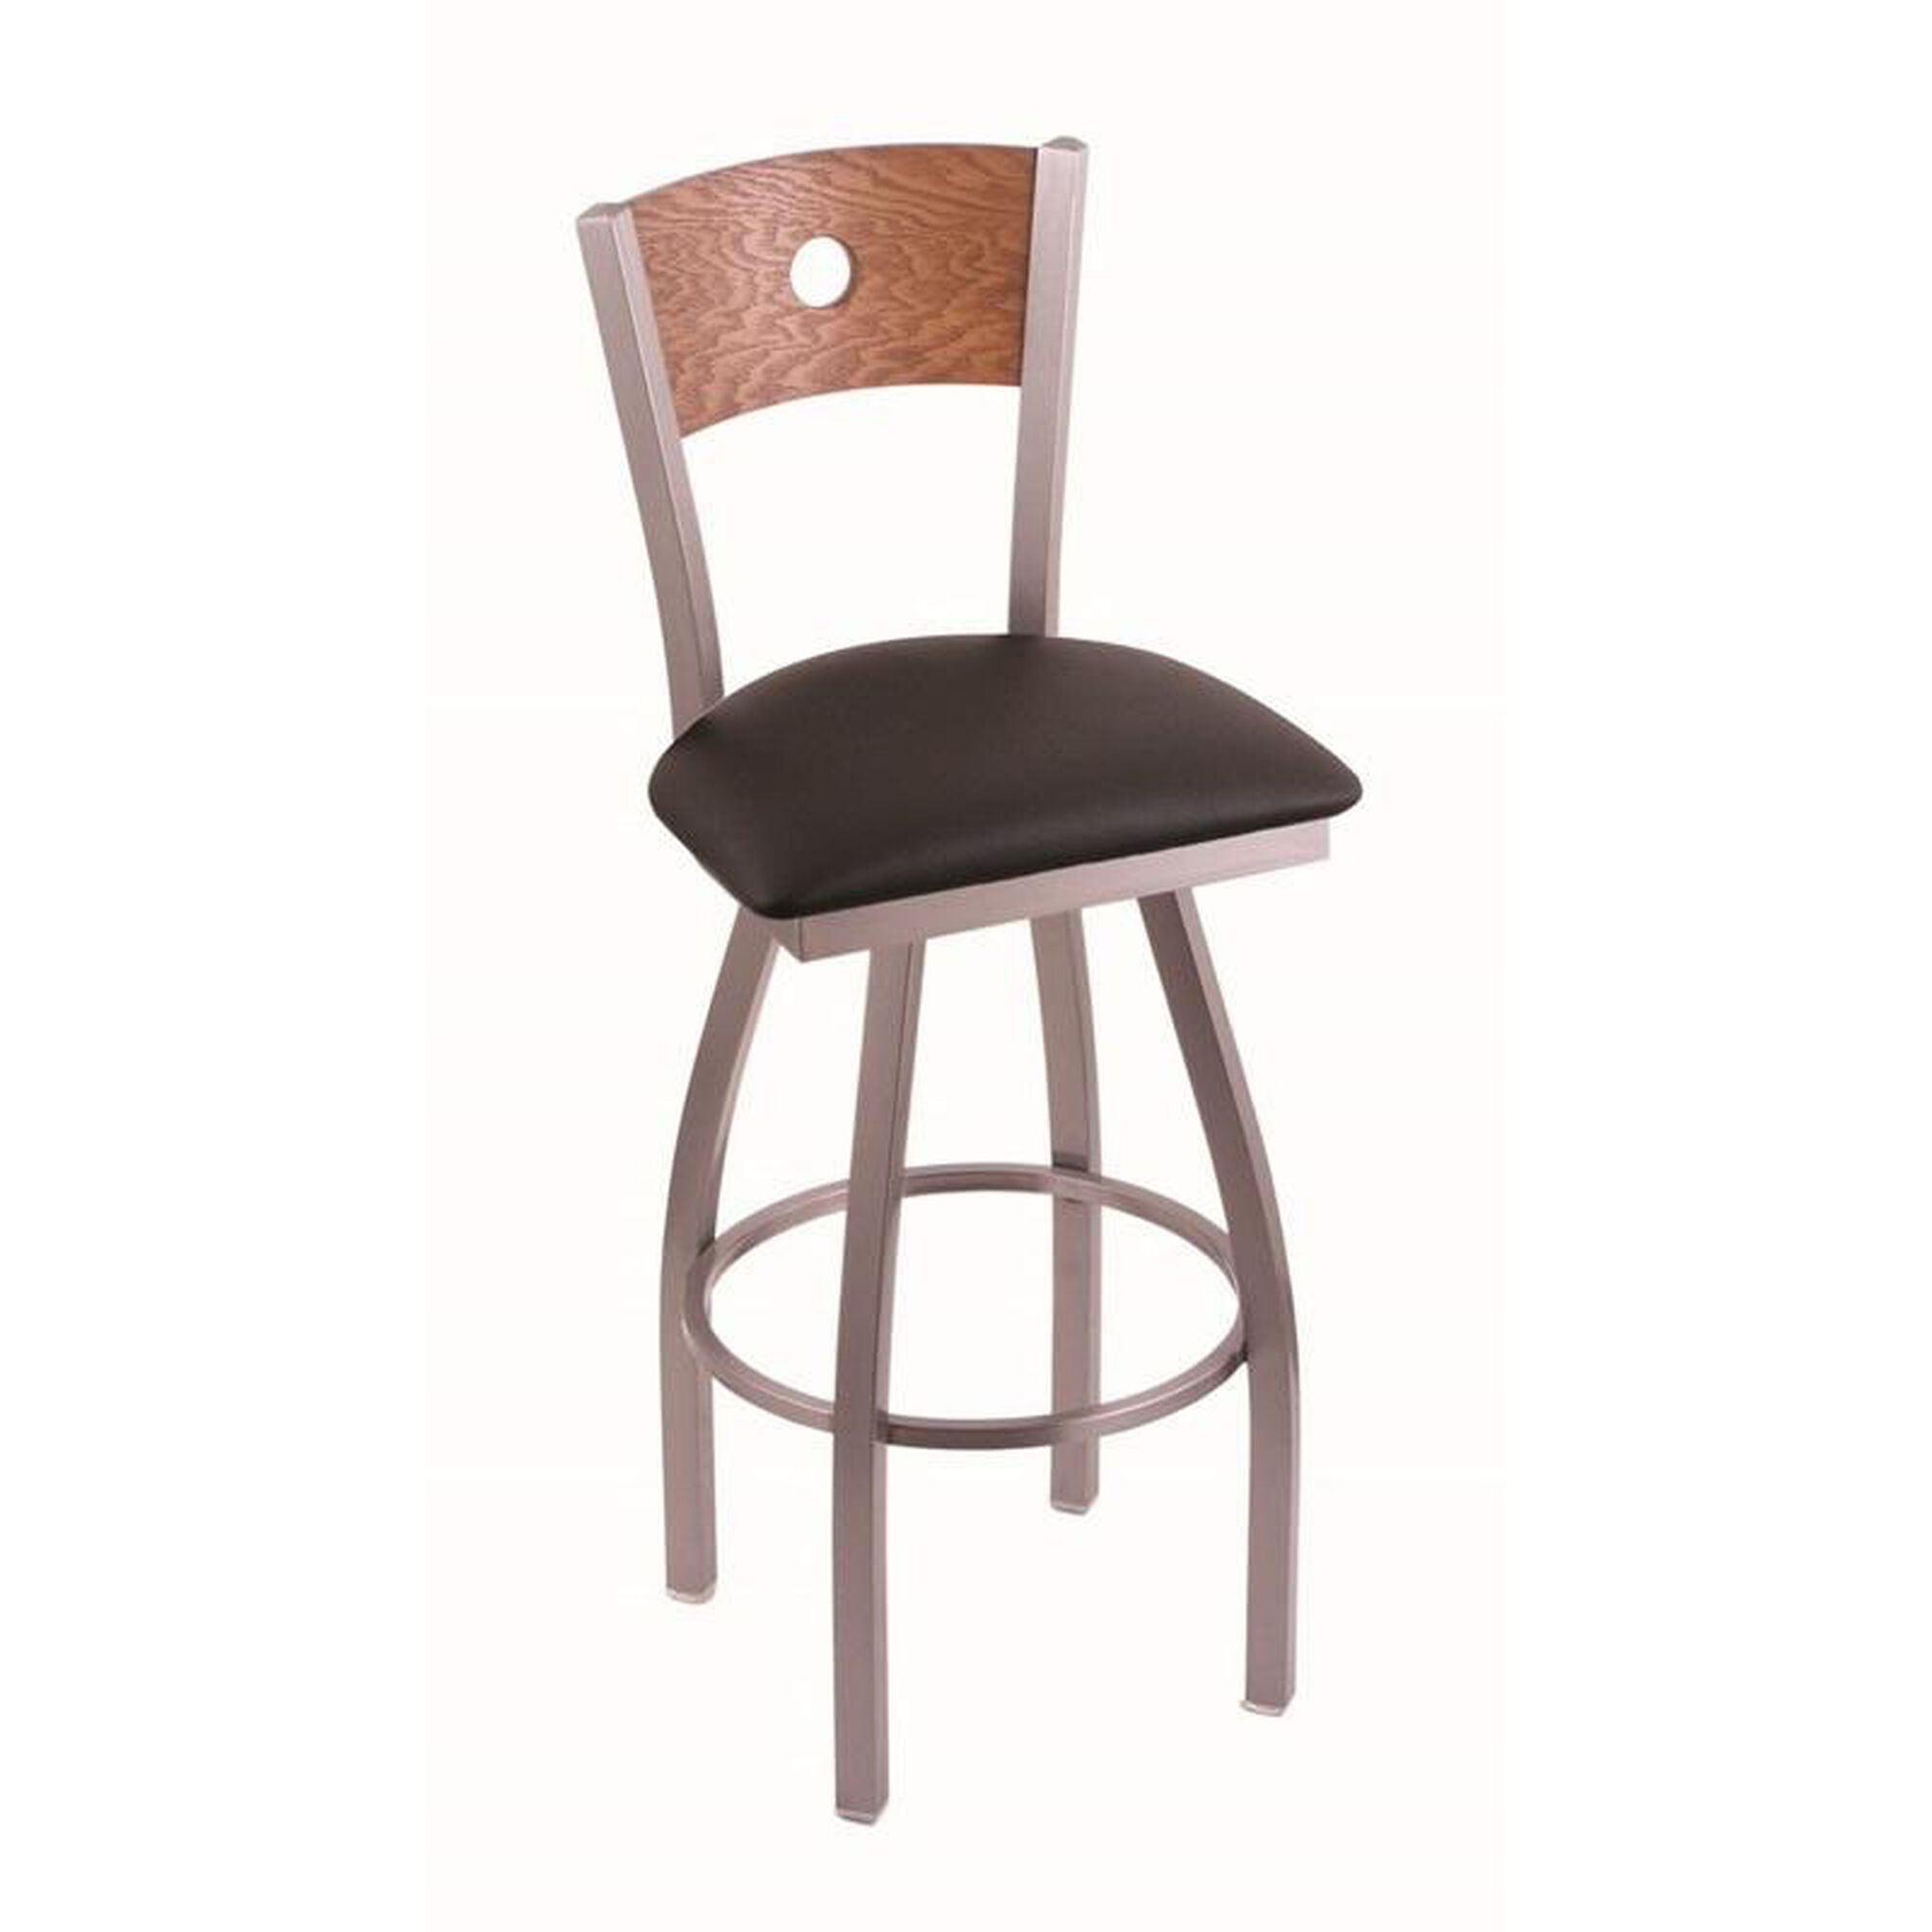 The Holland Bar Stool Co 83025SSMEDOAKBALESPR HOB  : THEHOLLANDBARSTOOLCO83025SSMEDOAKBALESPR HOBMAINIMAGE from www.restaurantfurniture4less.com size 2000 x 2000 jpeg 115kB